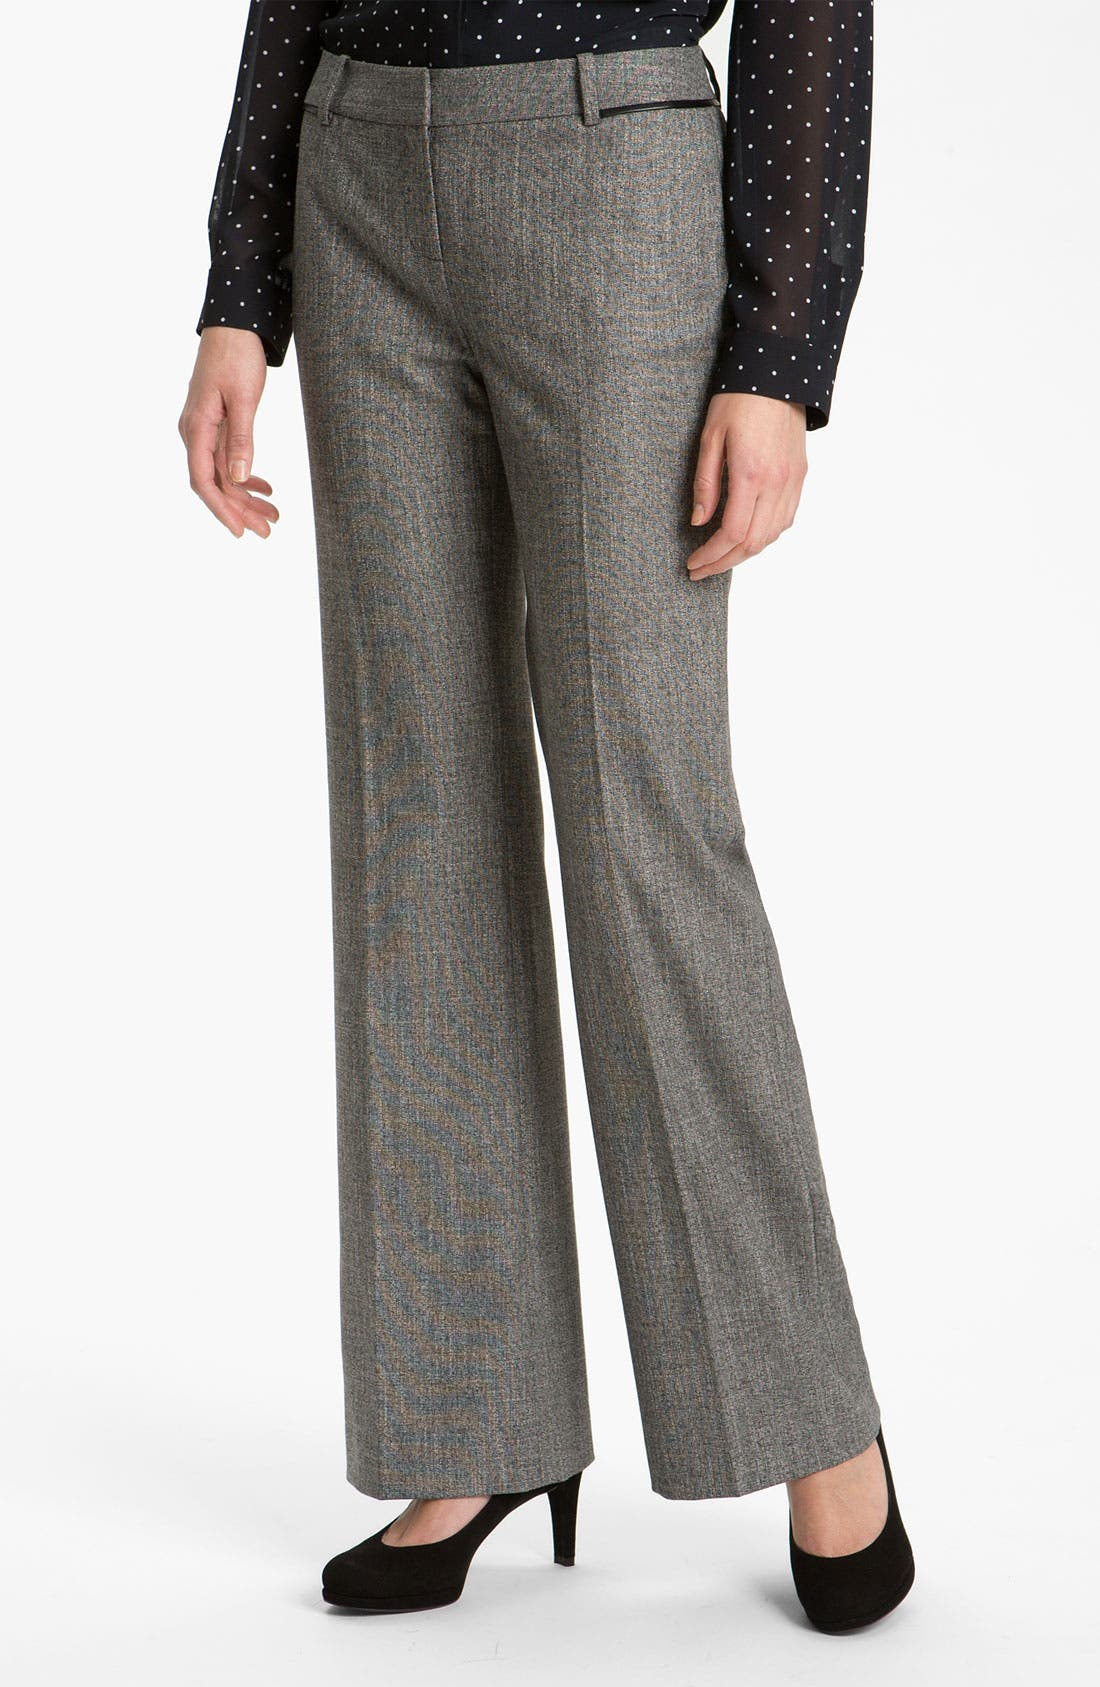 Alternate Image 1 Selected - Halogen® 'Taylor' Curvy Fit Two Tone Pants